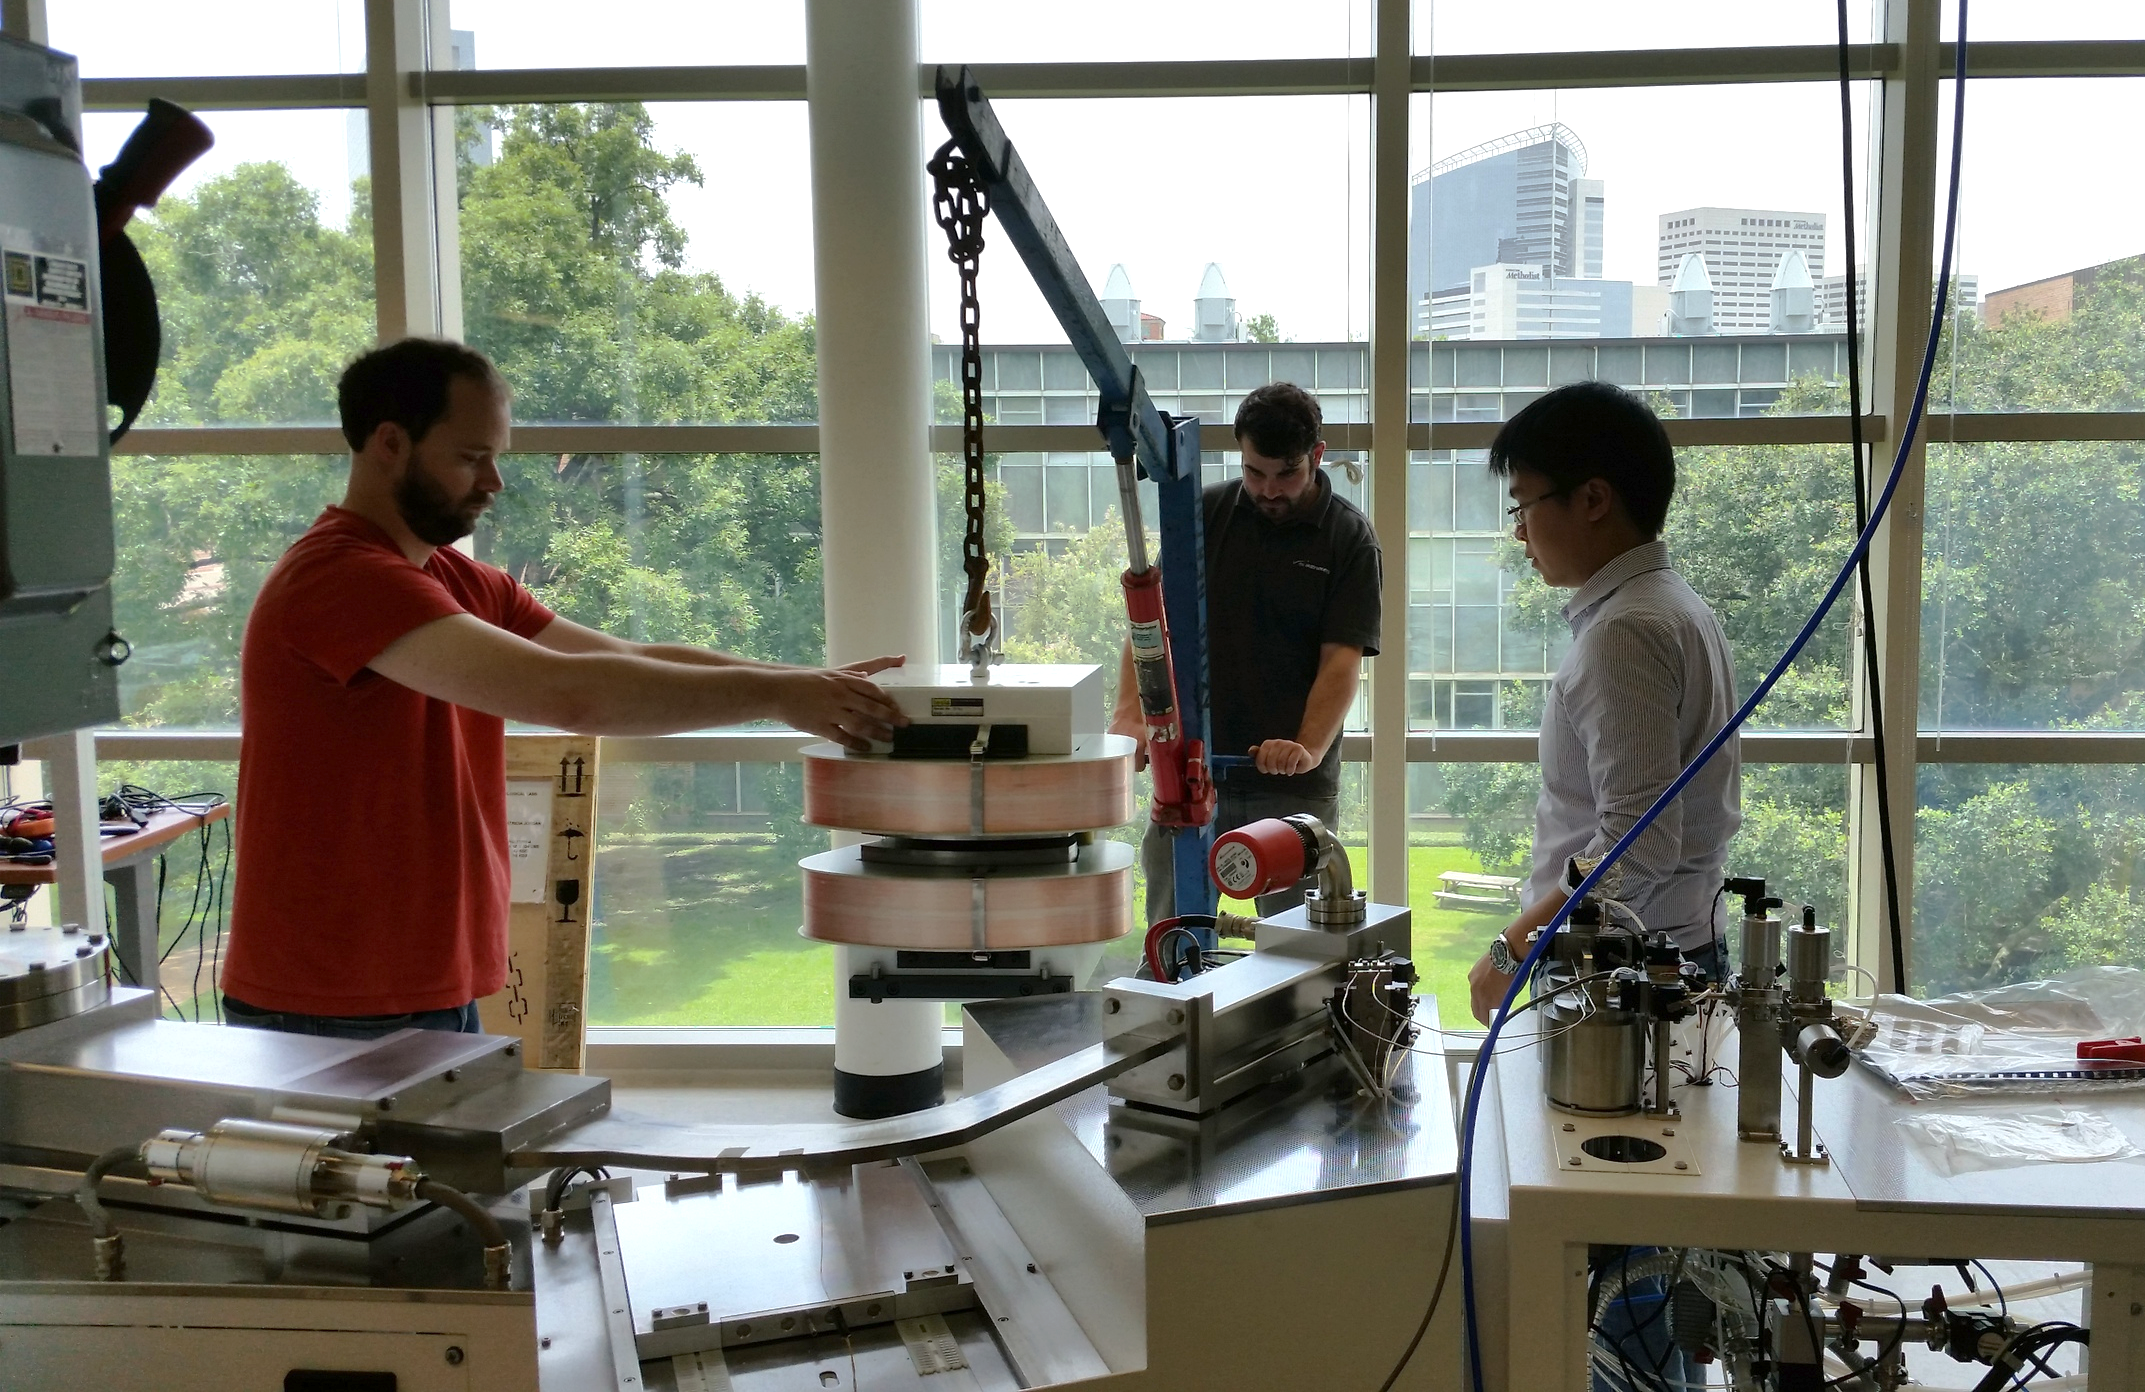 Loading the magnet onto the mass spectrometer. Left to right: Clint, Martin from Nu Instruments, and myself. Photo by Ian Mellor-Crummey.